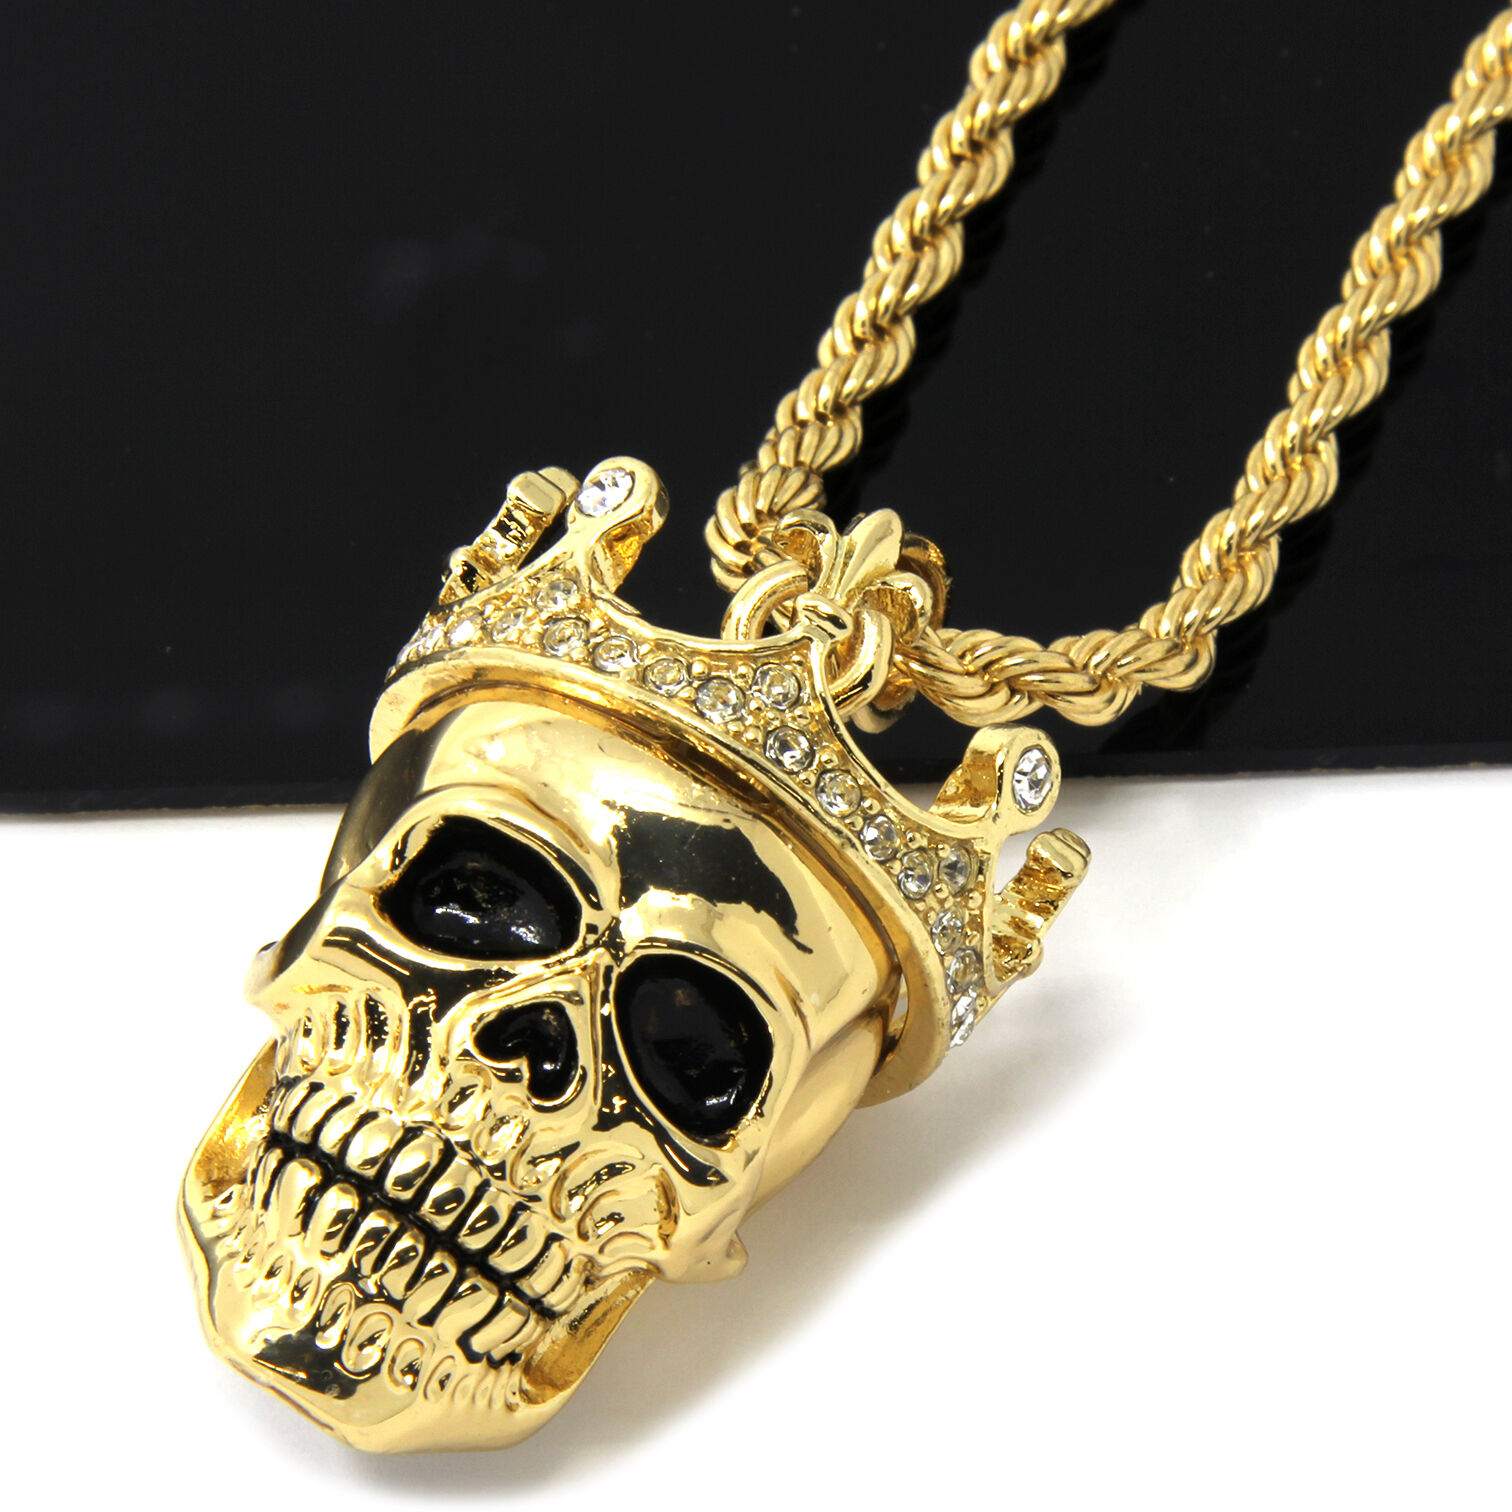 Mens gold iced cz king head skull pendant 24 rope chain hip hop resntentobalflowflowcomponenttechnicalissues mozeypictures Images